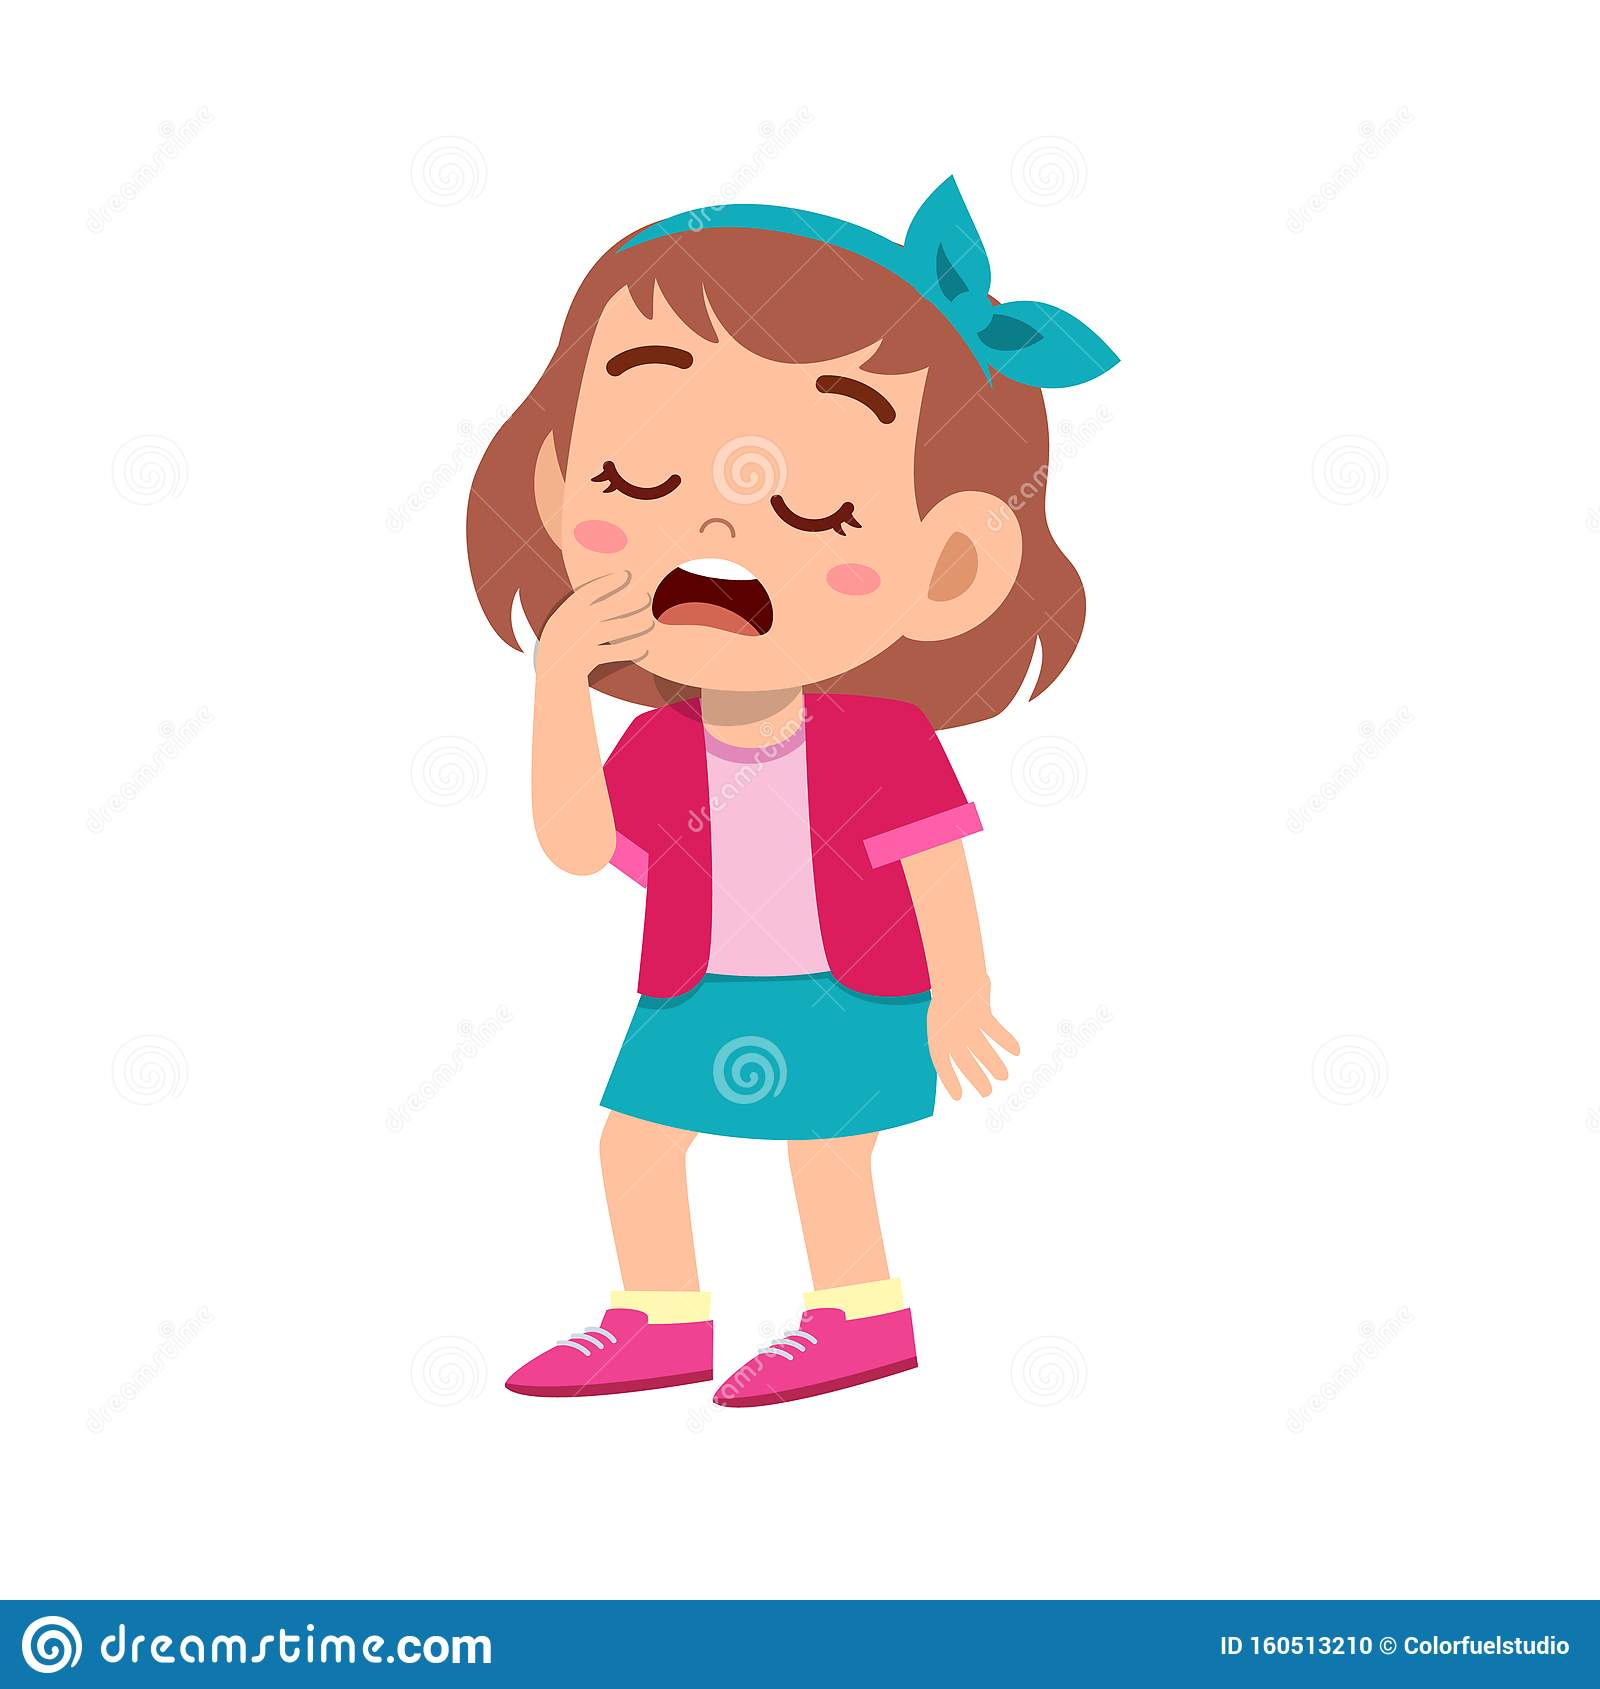 Kid Yawn Stock Illustrations 230 Kid Yawn Stock Illustrations Vectors Clipart Dreamstime